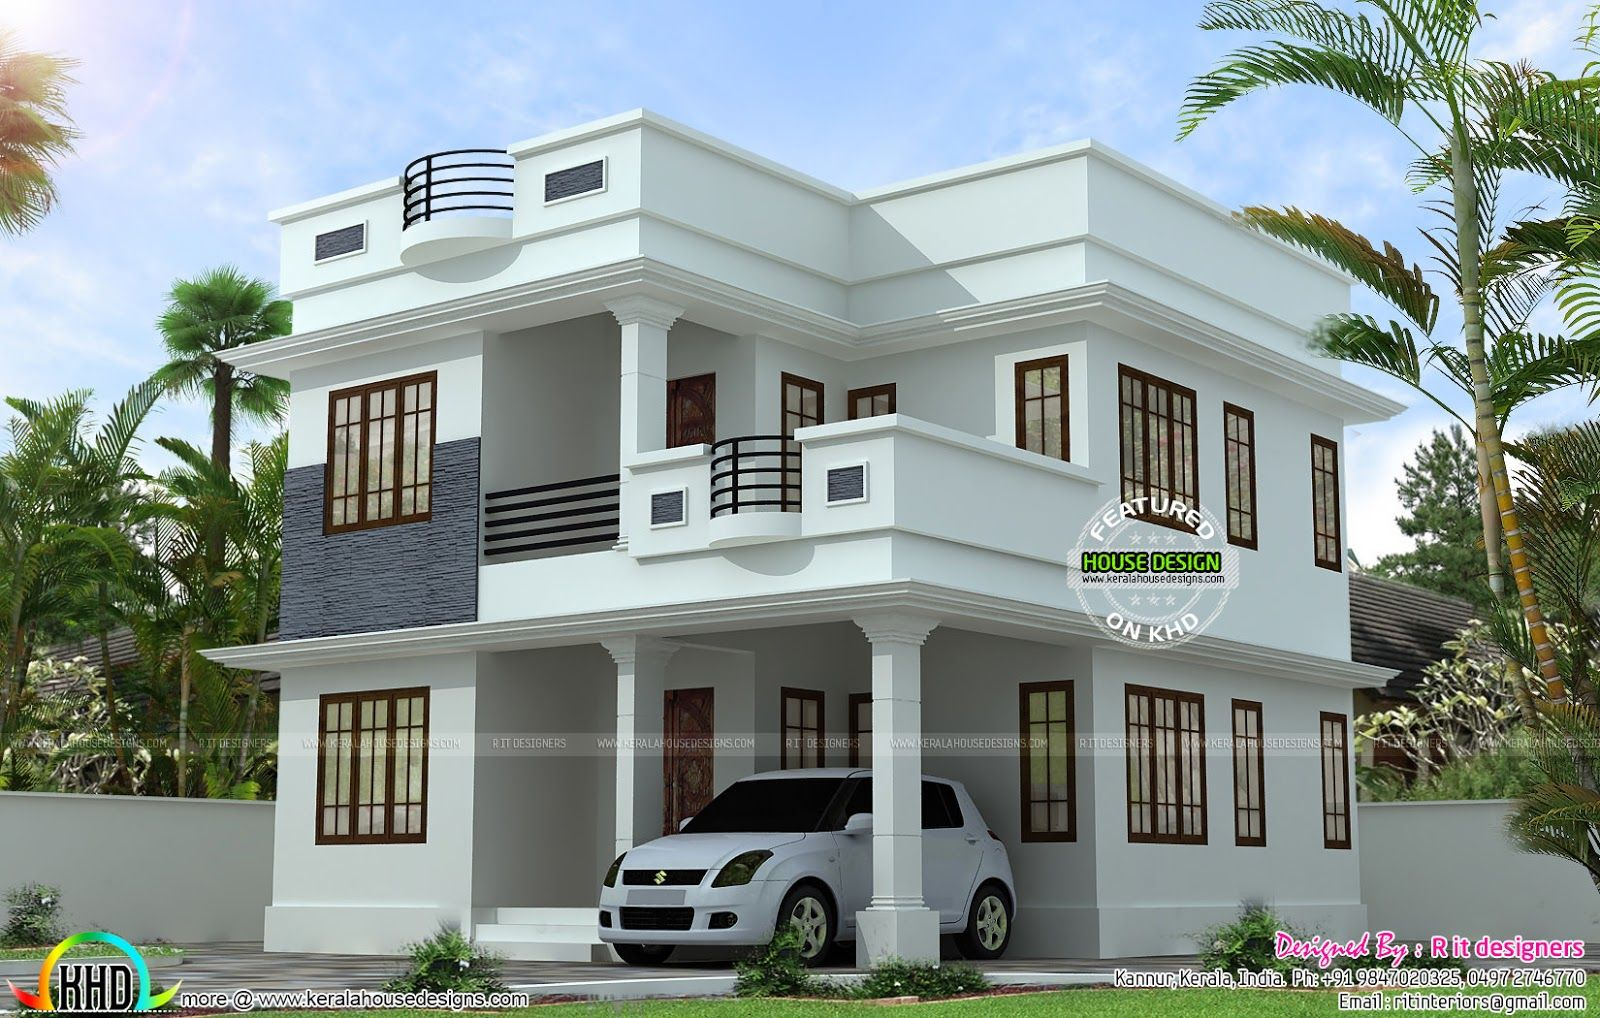 neat and simple small house plan kerala home design and floor plans - Home Design Images